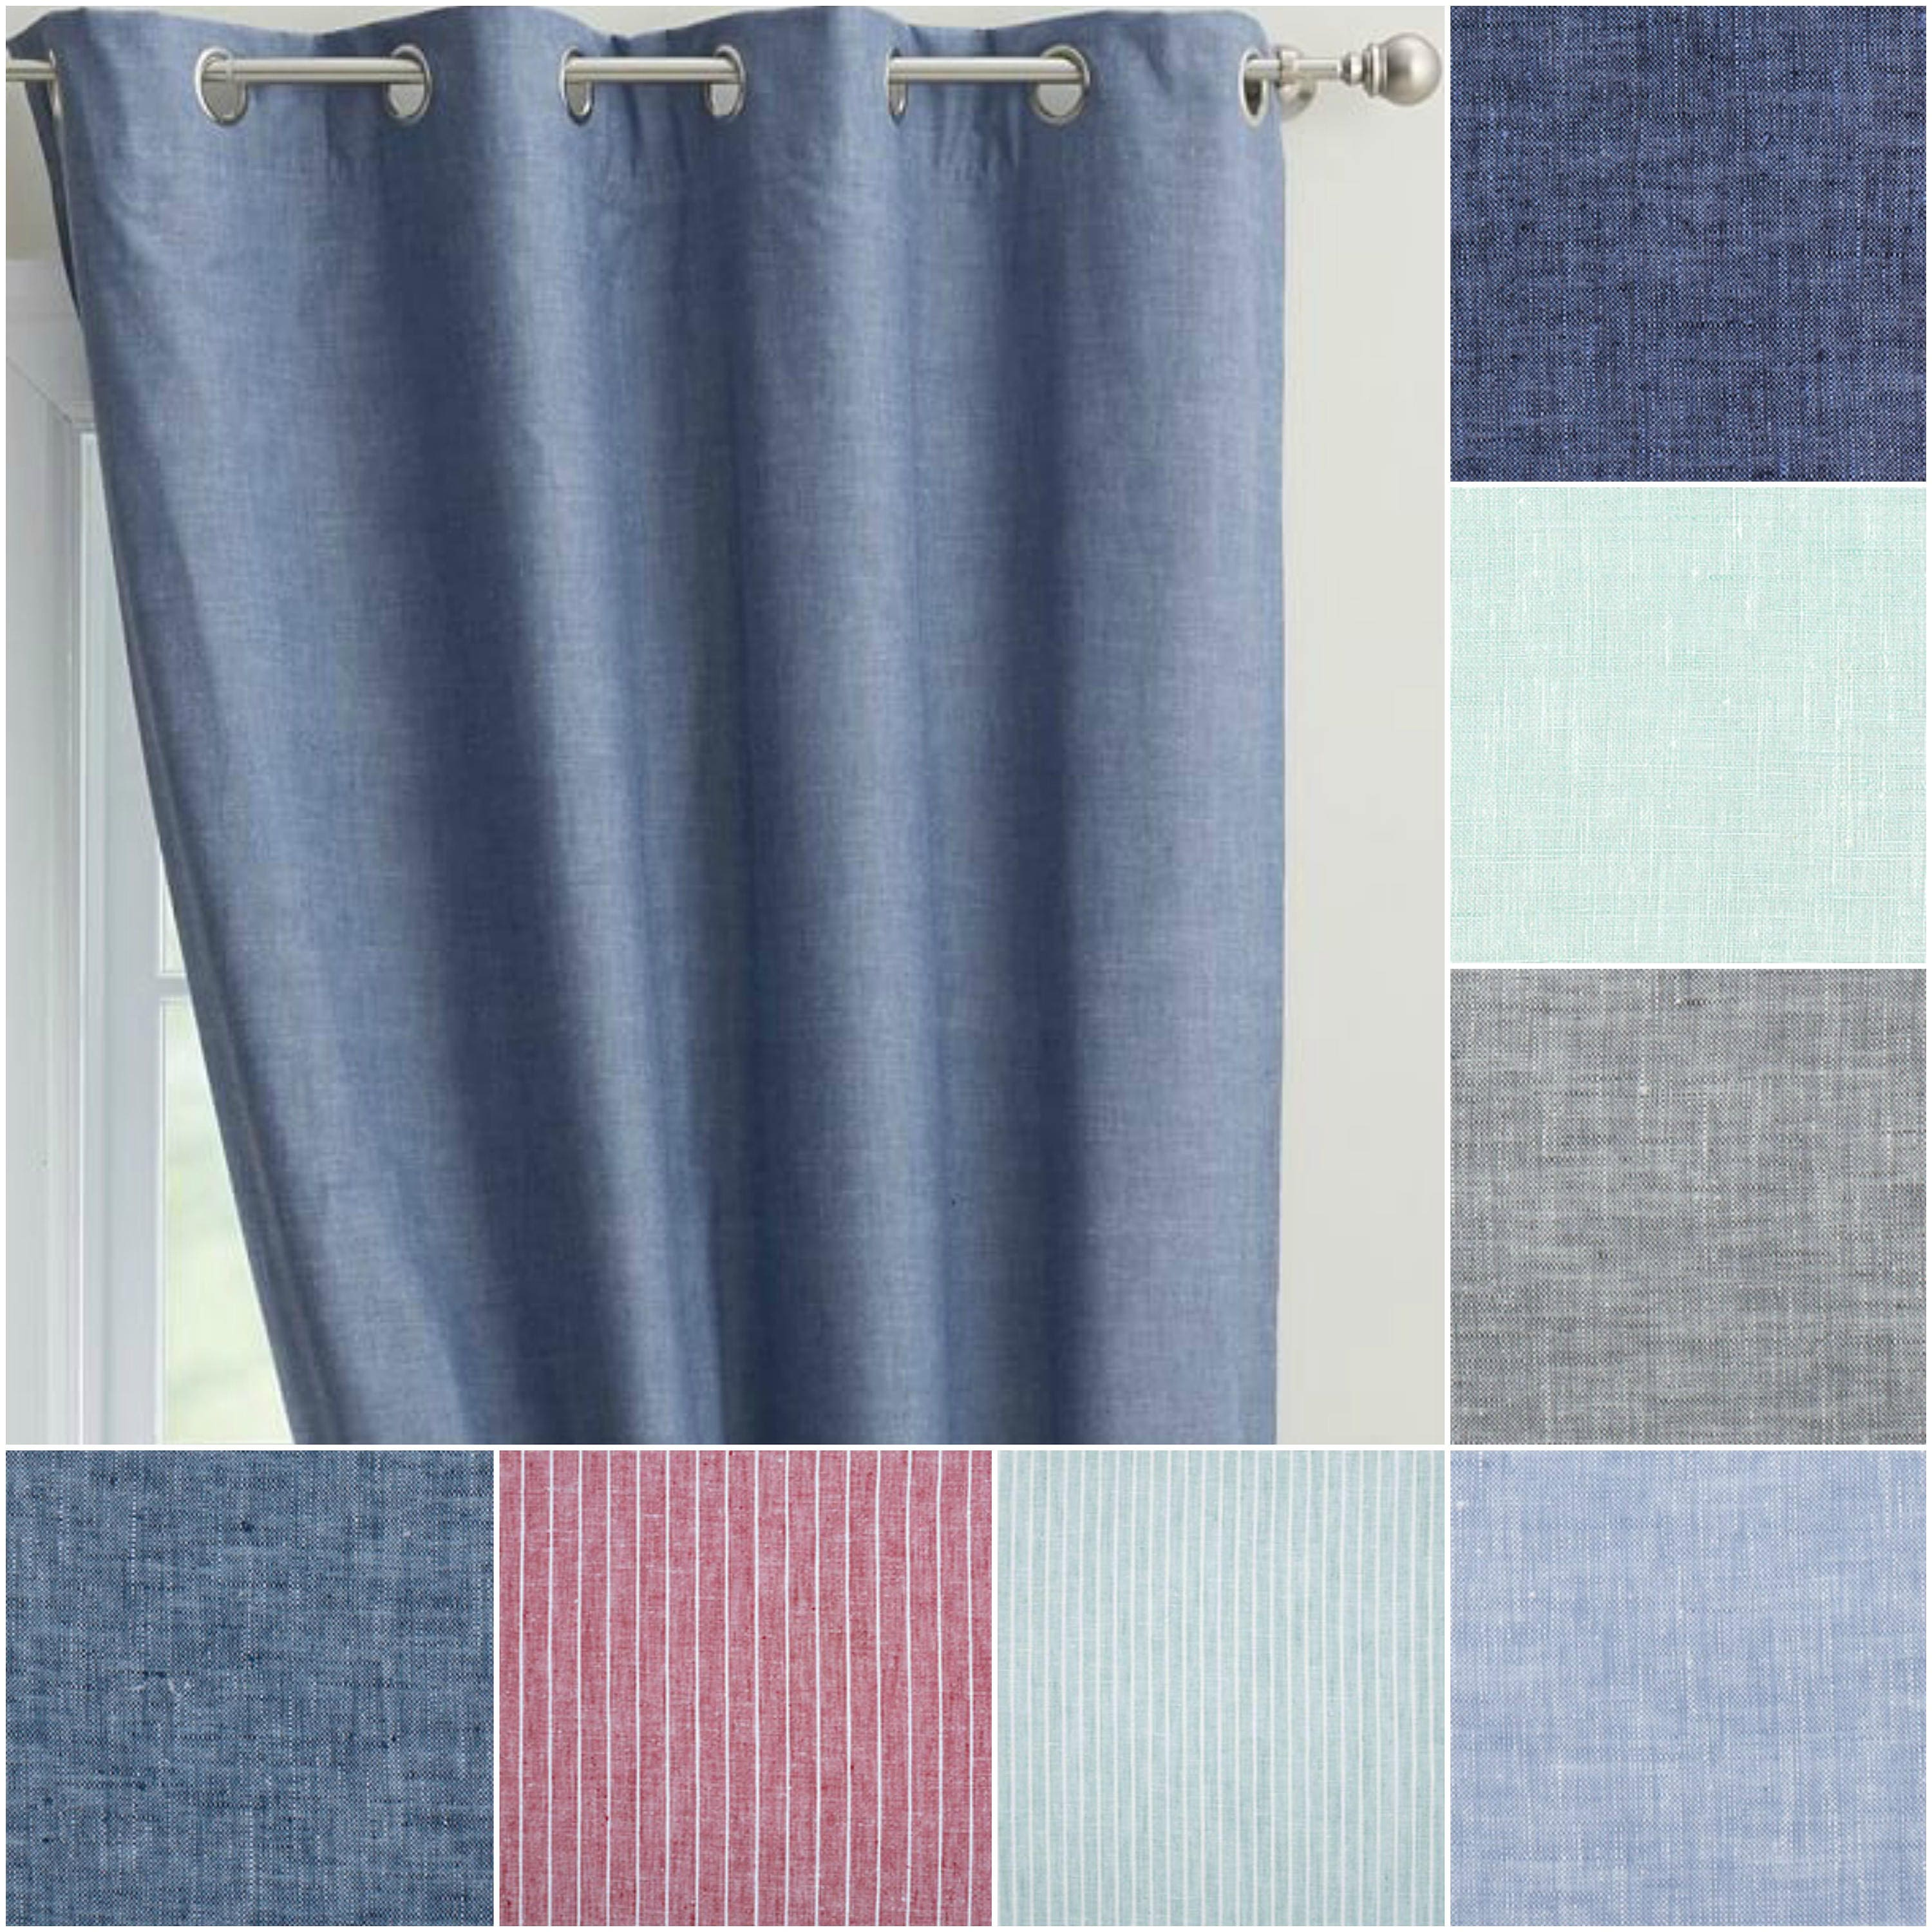 Custom Chambray 100 Linen Drapes With Lining You Pick The Color And Size